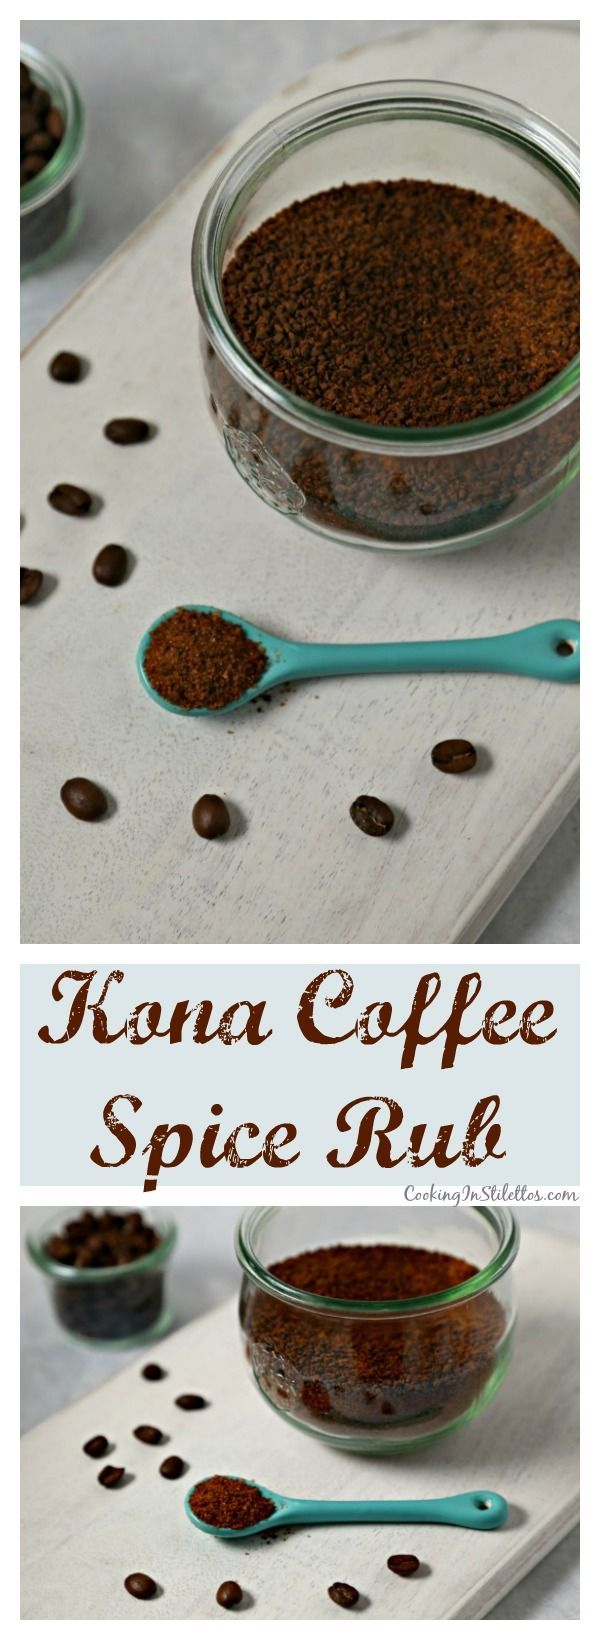 This Kona Coffee Spice Rub from CookingInStilettos.com will be the hit at your next cookout.  This flavorful spice rub will add a savory kick to your favorite steaks, burgers & more with rich kona coffee, a touch of sweetness and a hint of smoke and spice.  Forget the store-bought spice rubs - this Kona Coffee Spice Rub is so easy to make and perfect for giving and receiving. | @CookInStilettos